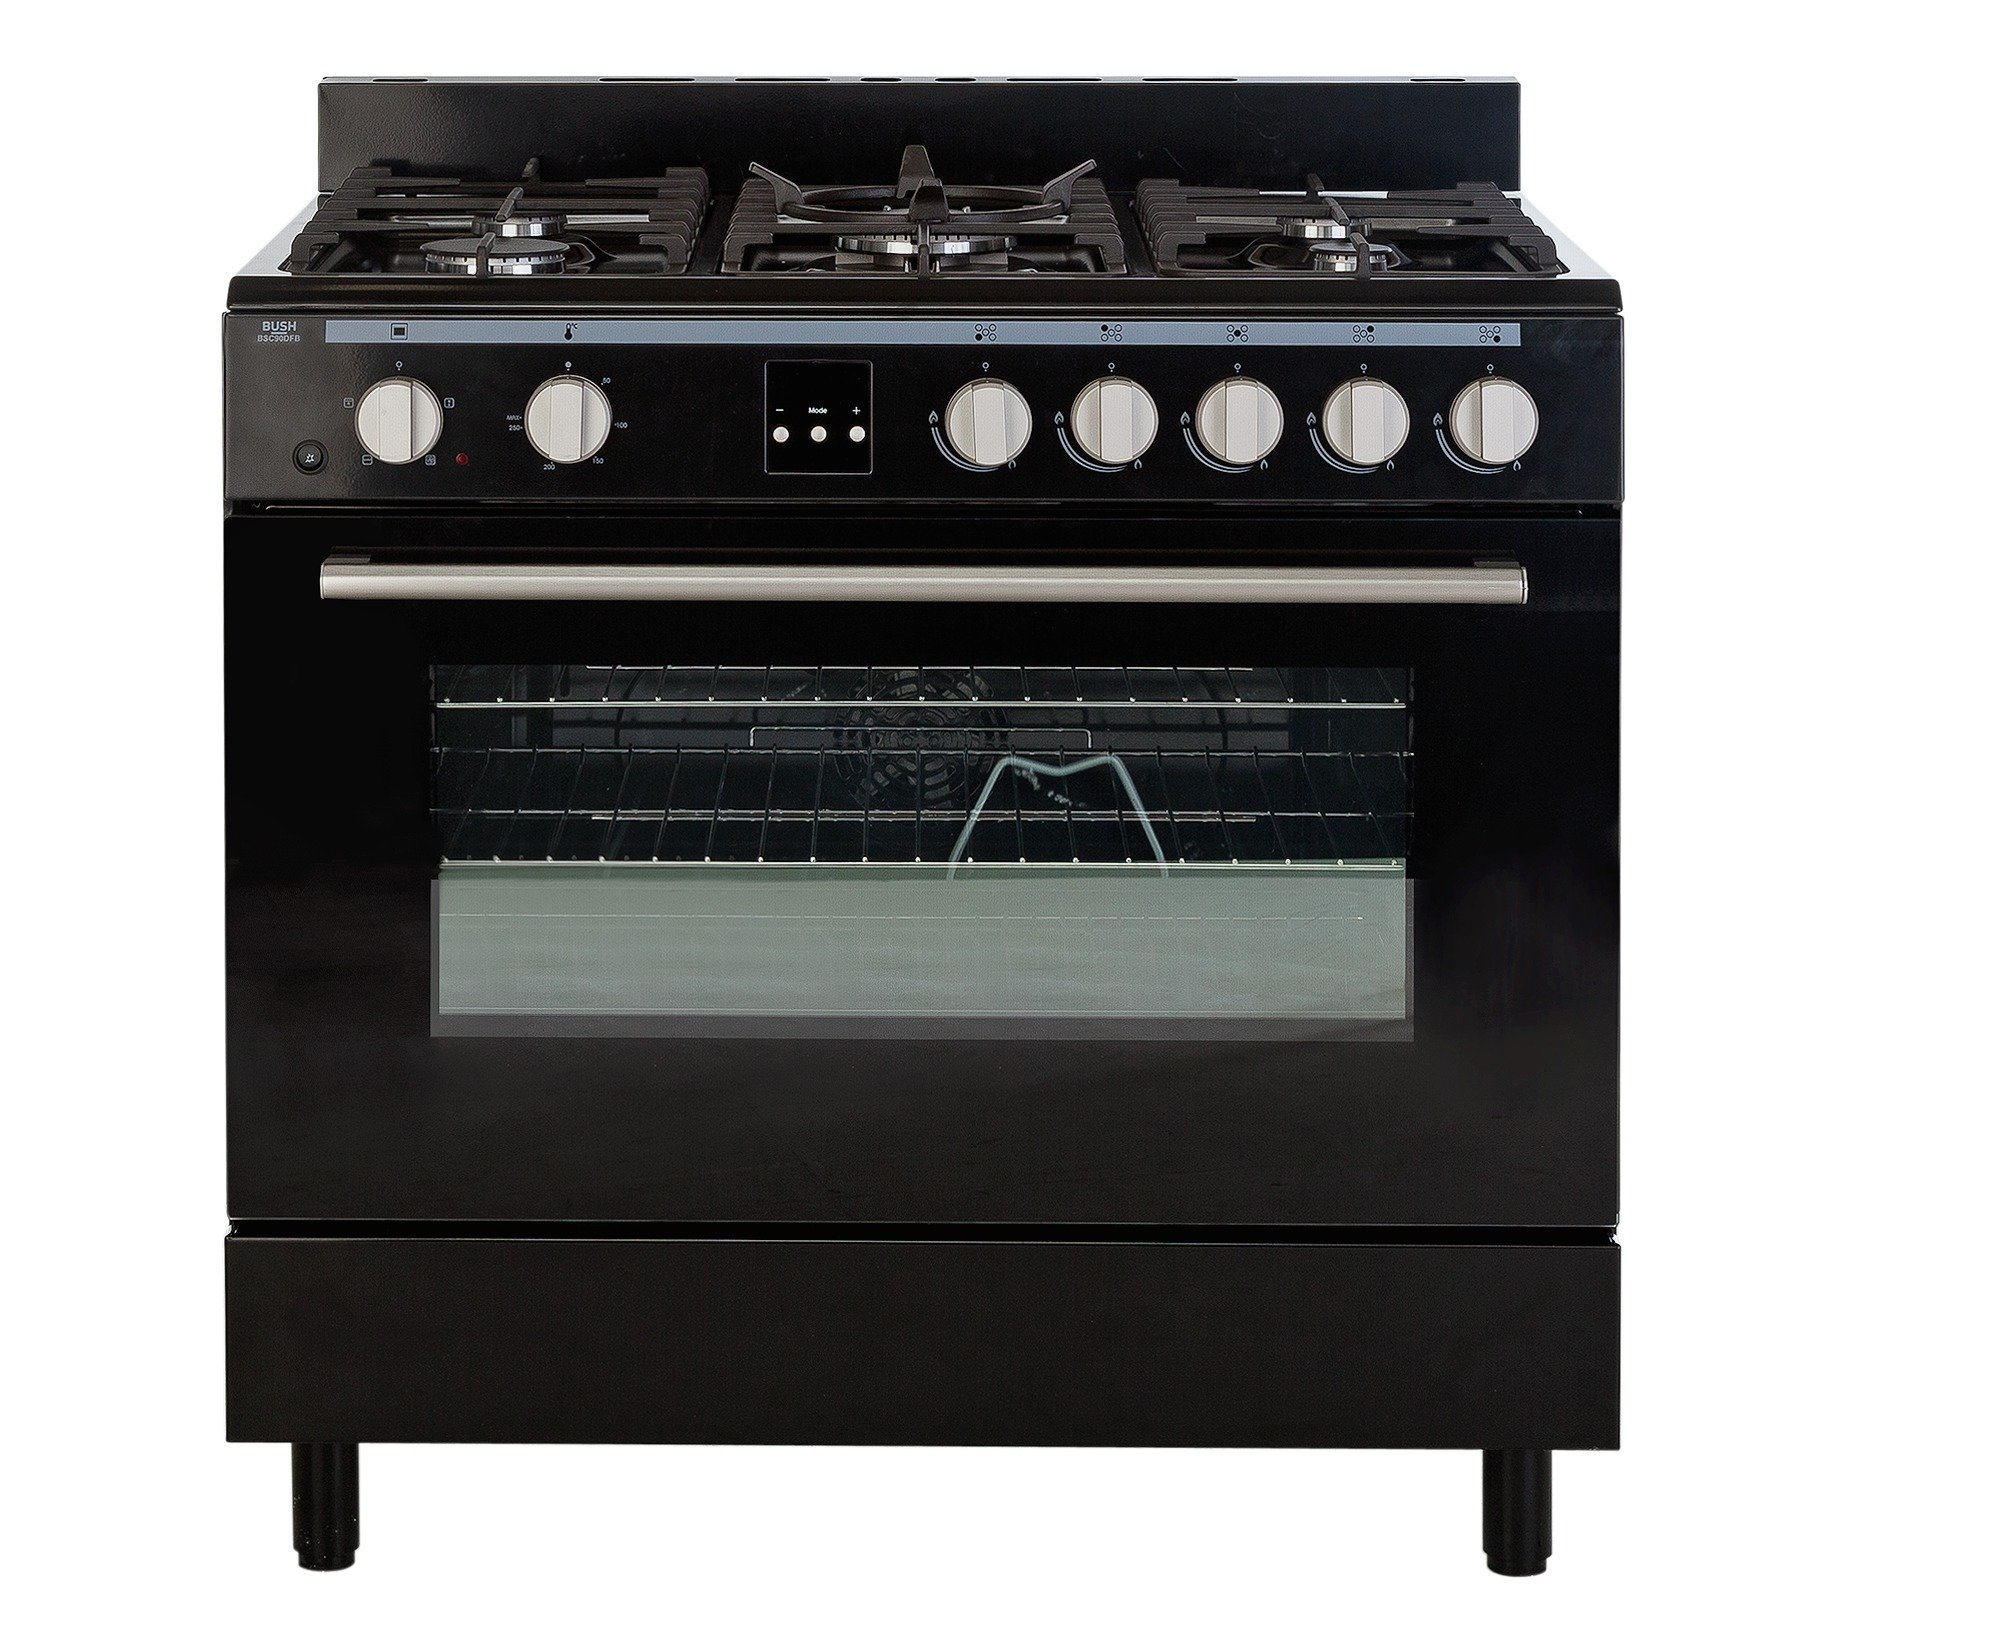 Image of Bush BSC90DFB Dual Fuel Range Cooker - Black + Installation